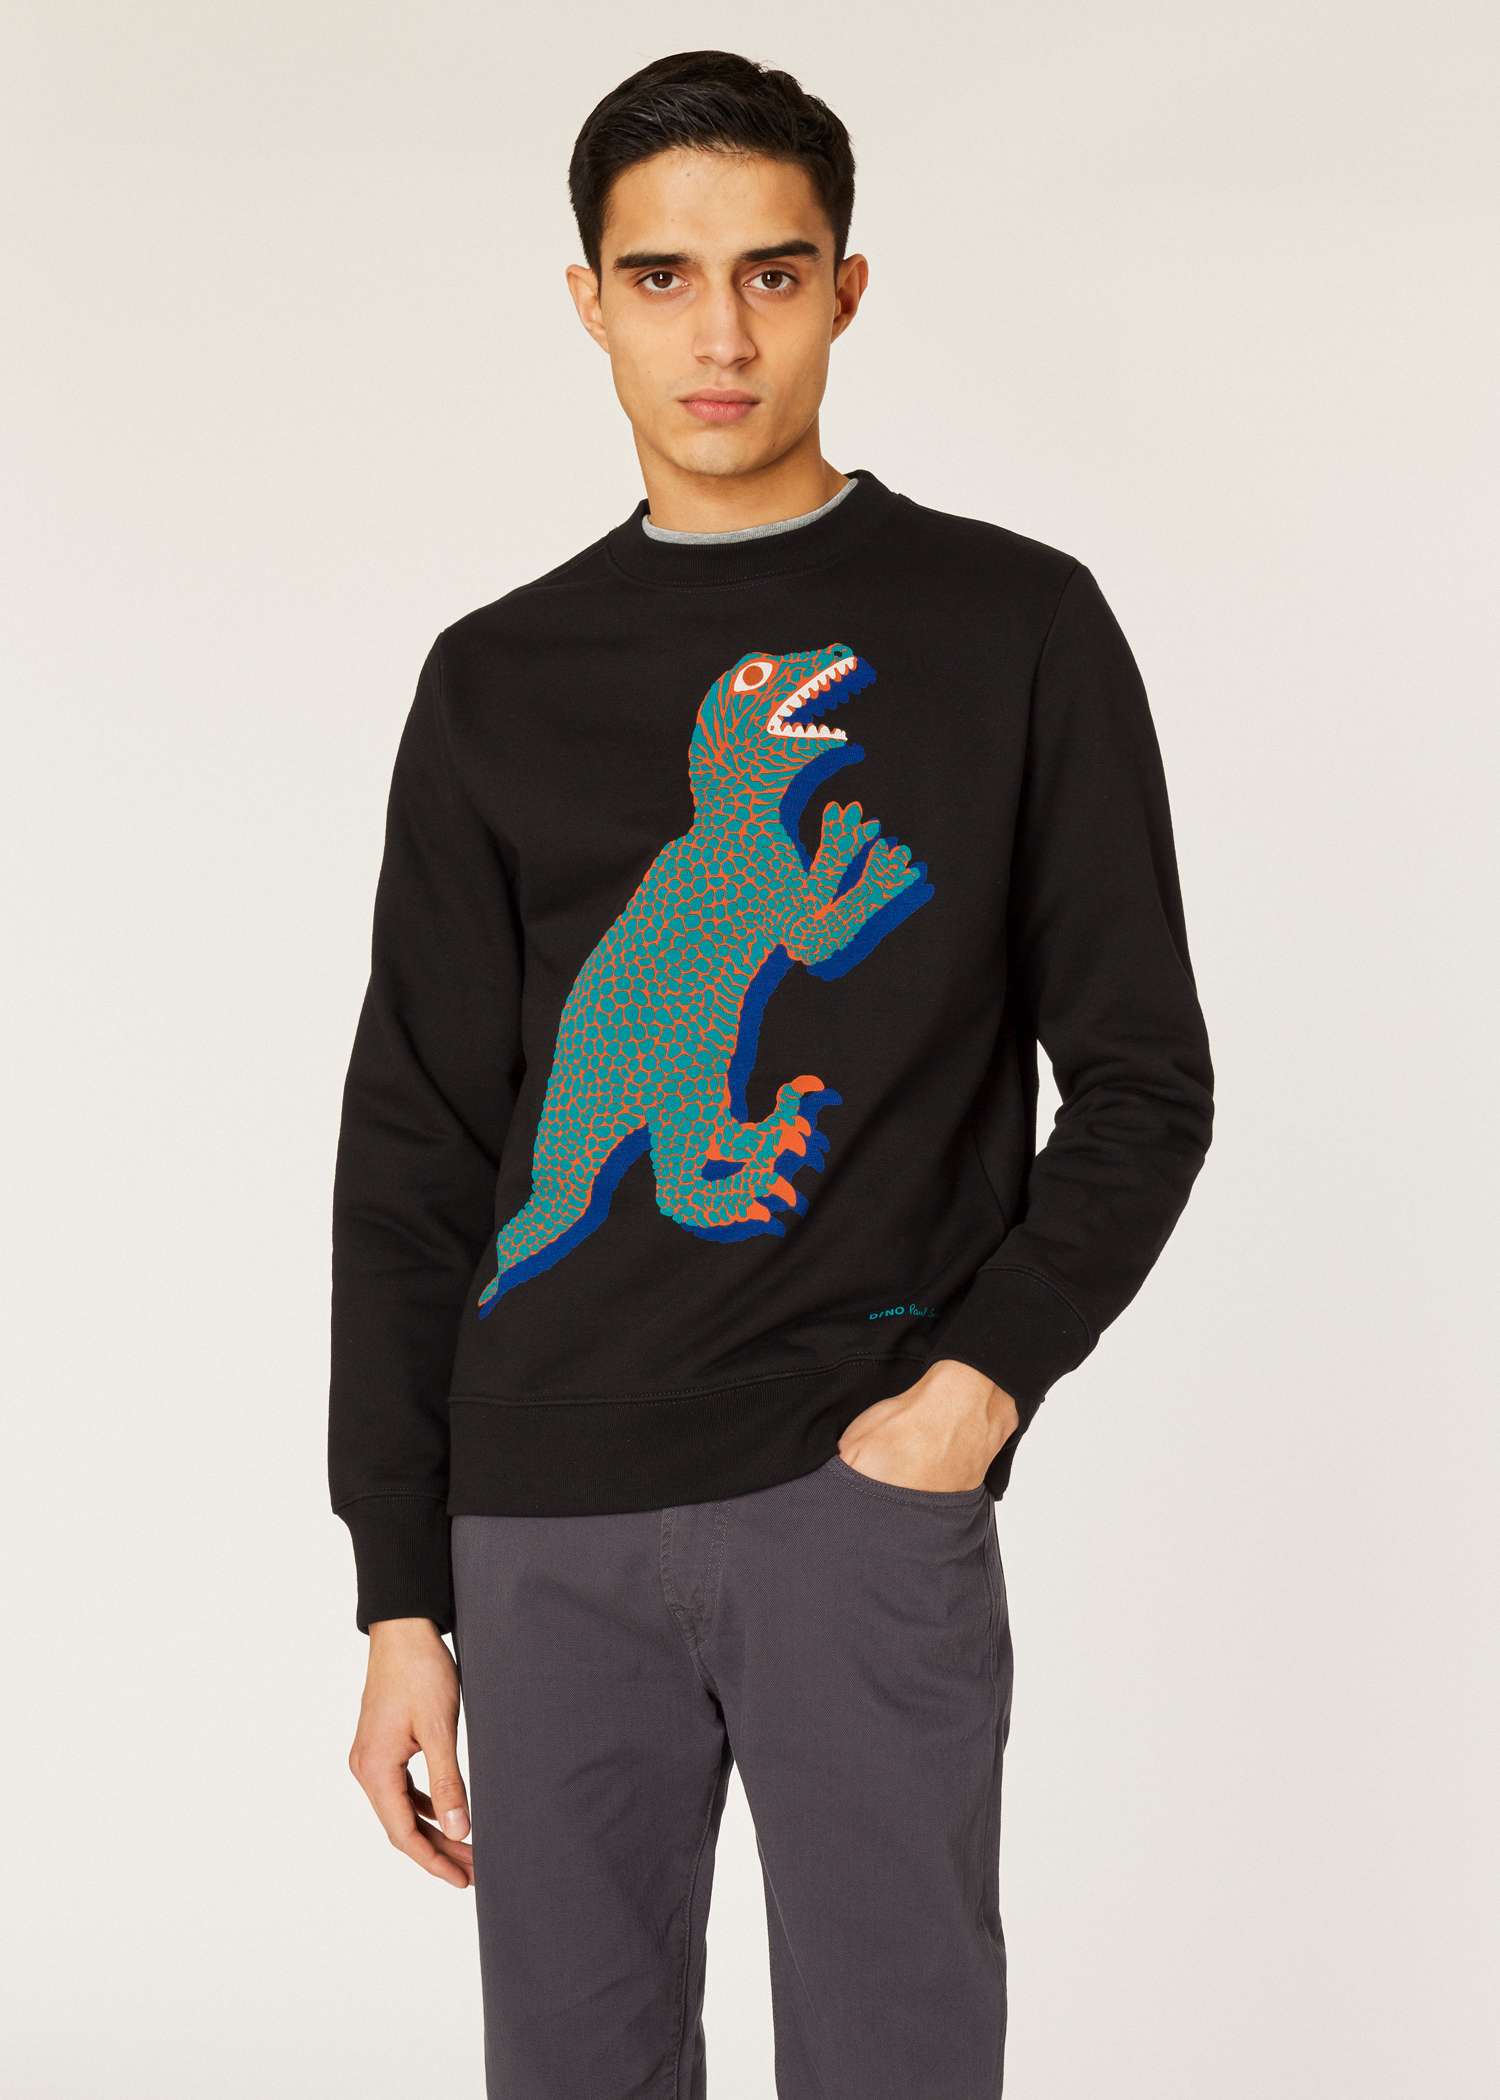 7f97f718a1fae Model front close up - Men s Black Organic-Cotton Large Dino Sweatshirt  Paul Smith